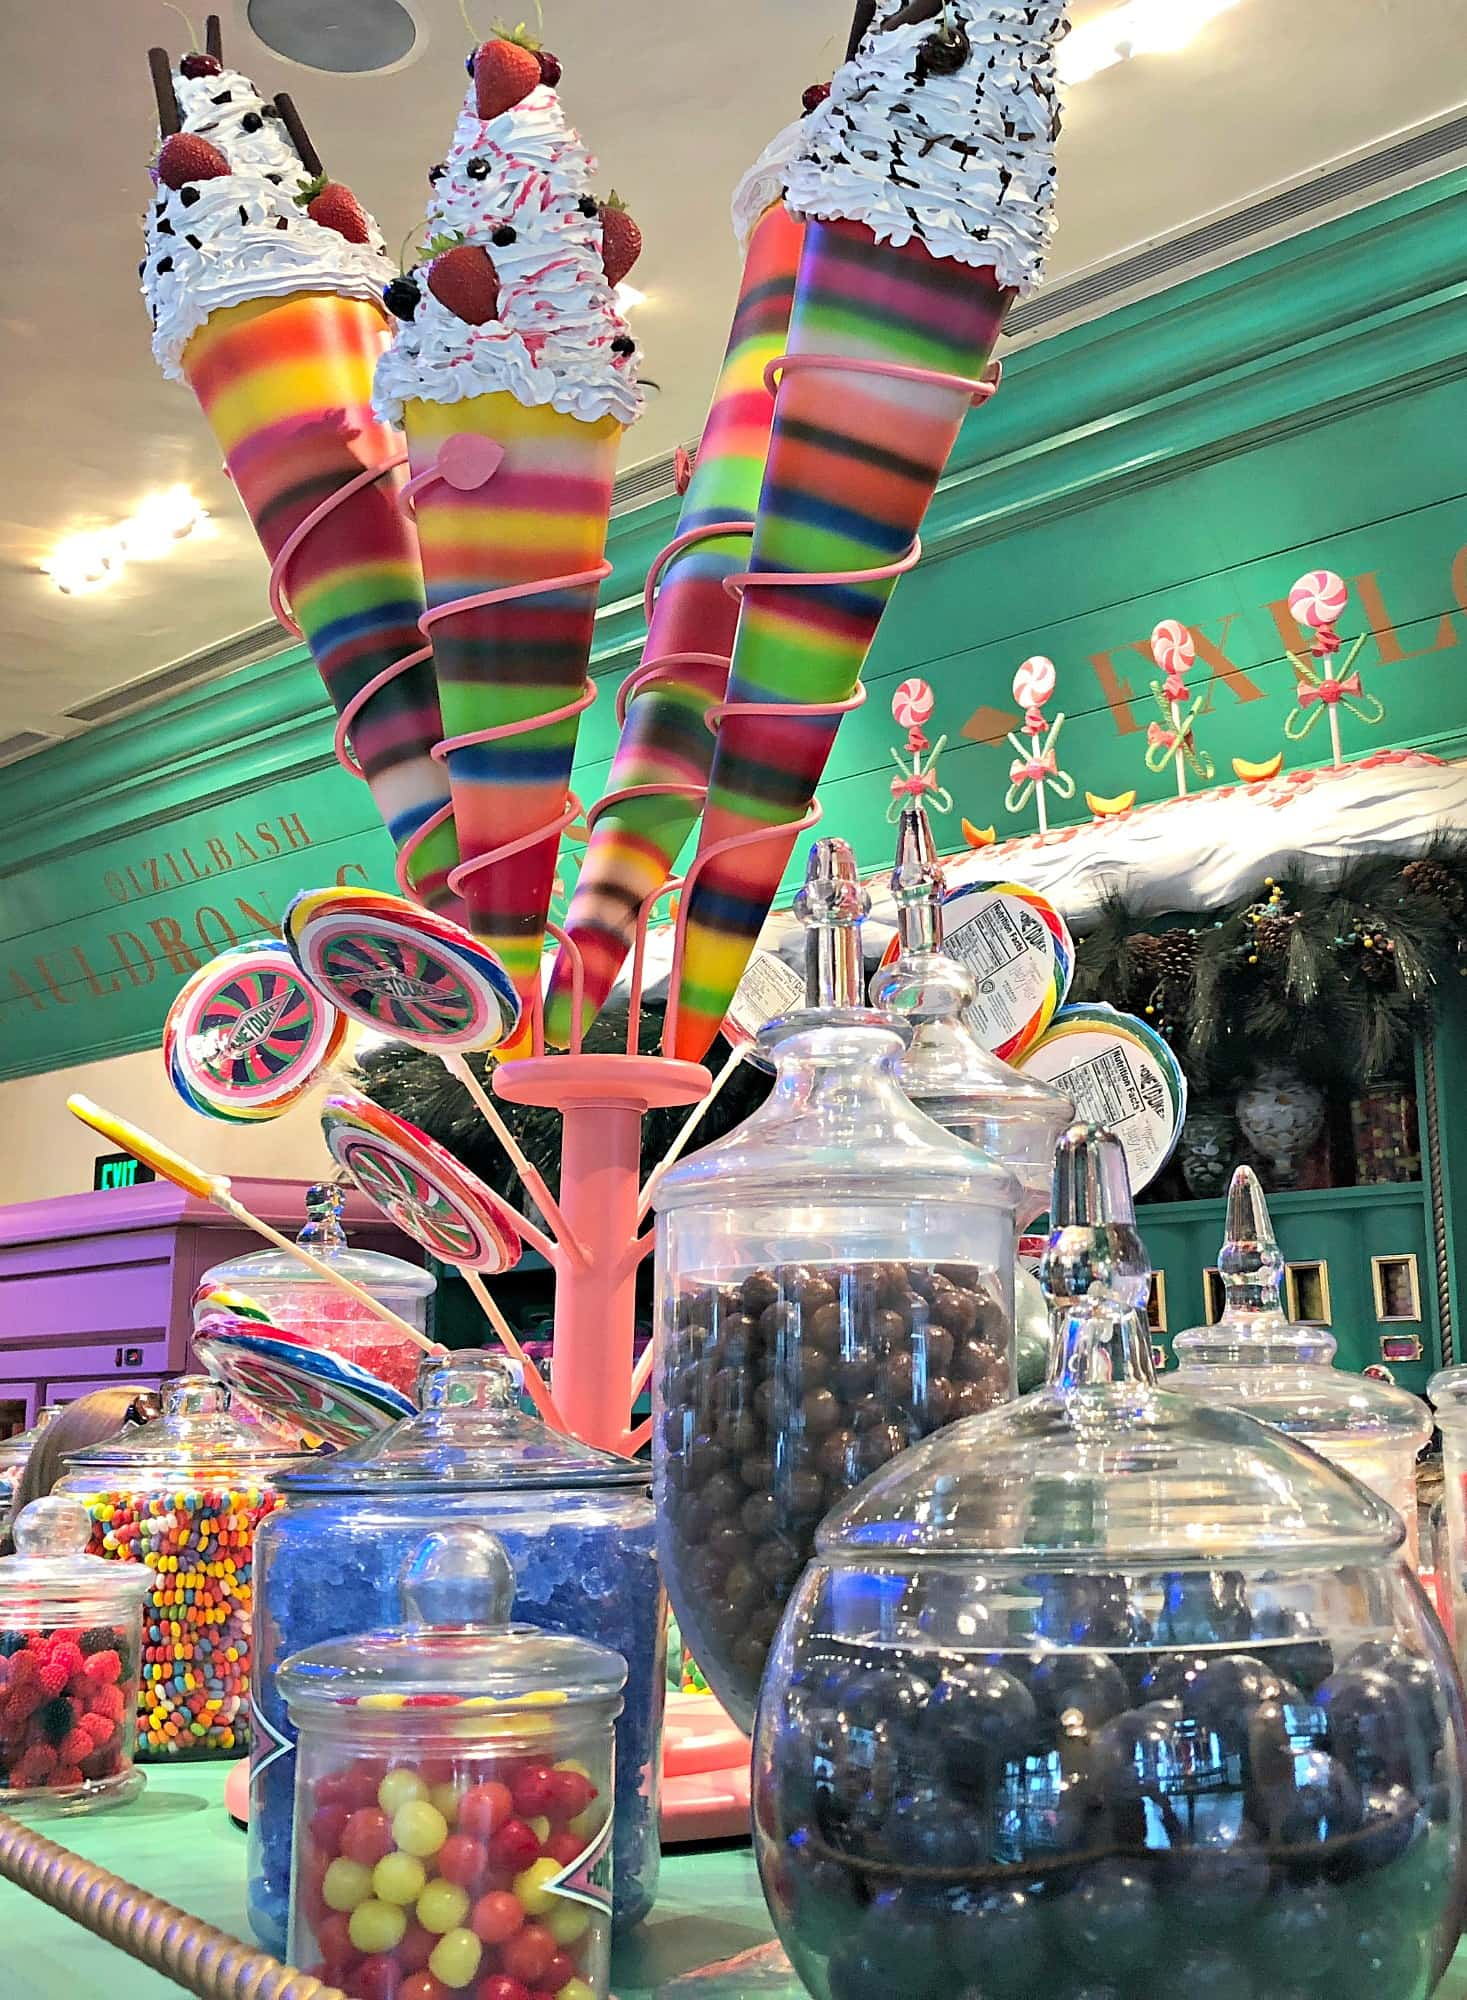 Honeydukes will tempt your sugar tooth at the Wizarding World of Harry Potter at Universal Studios Hollywood